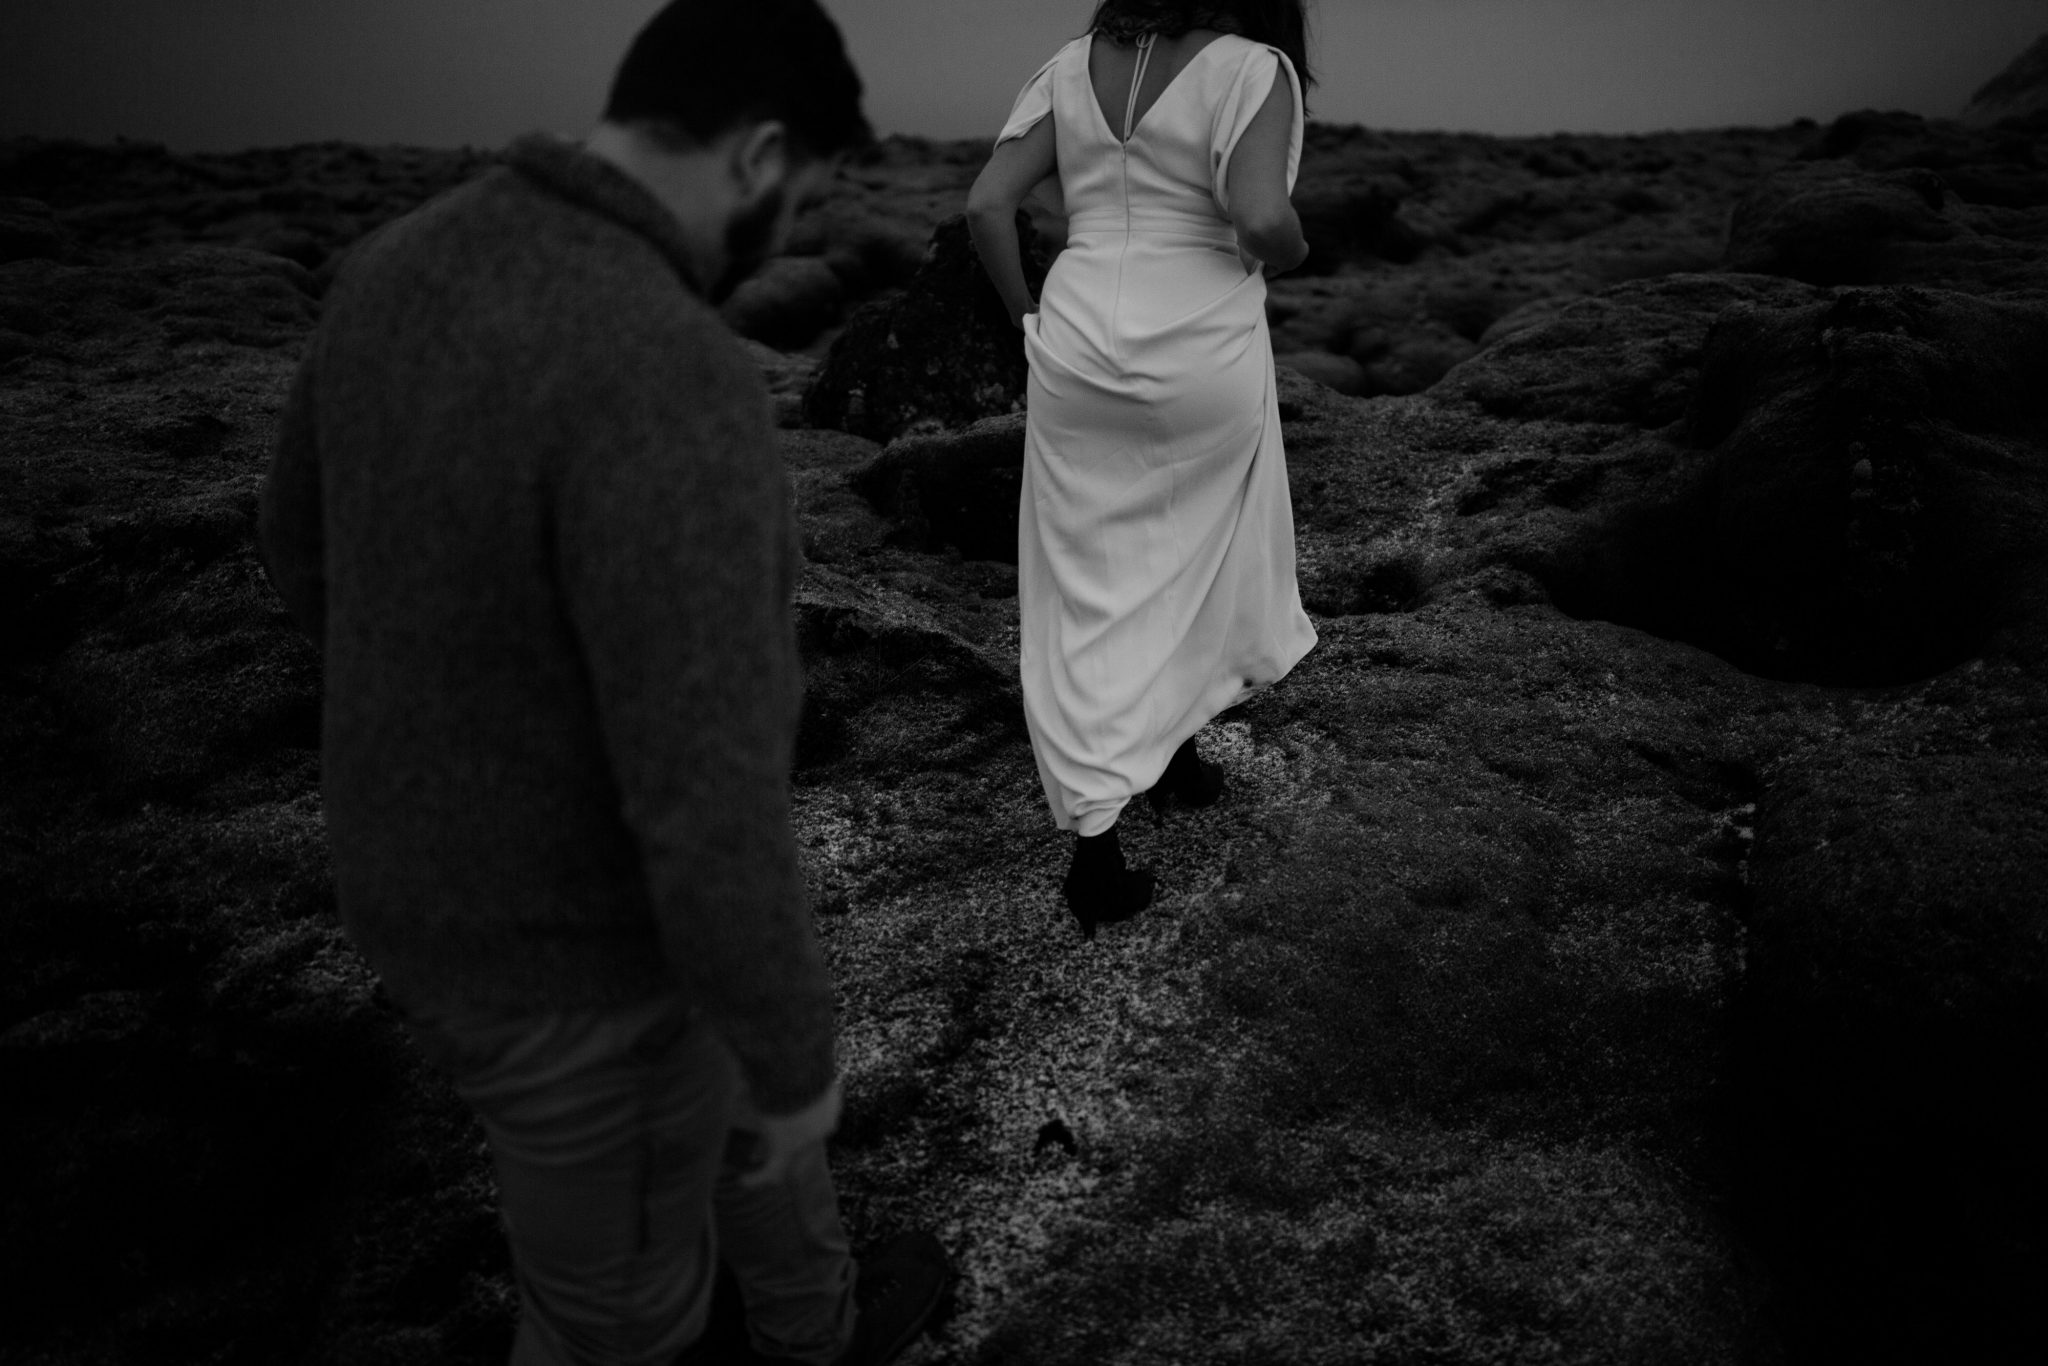 candid elopement photos, wedding elopement inspiration, elopement location ideas, destination wedding inspiration, see through wedding dress, couples photos in iceland,brooklyn wedding photographer, Iceland wedding photos, brooklyn new york photographer, destination wedding photographer, photojournalistic brooklyn wedding photographer, philadelphia wedding photographer, photojournalistic philadelphia wedding photographer, unique wedding photos, untraditional wedding ideas, Iceland elopement photographer, destination elopement photographer, unique elopement inspiration. minimalistic wedding dress, fur wedding coat, vintage wedding dress